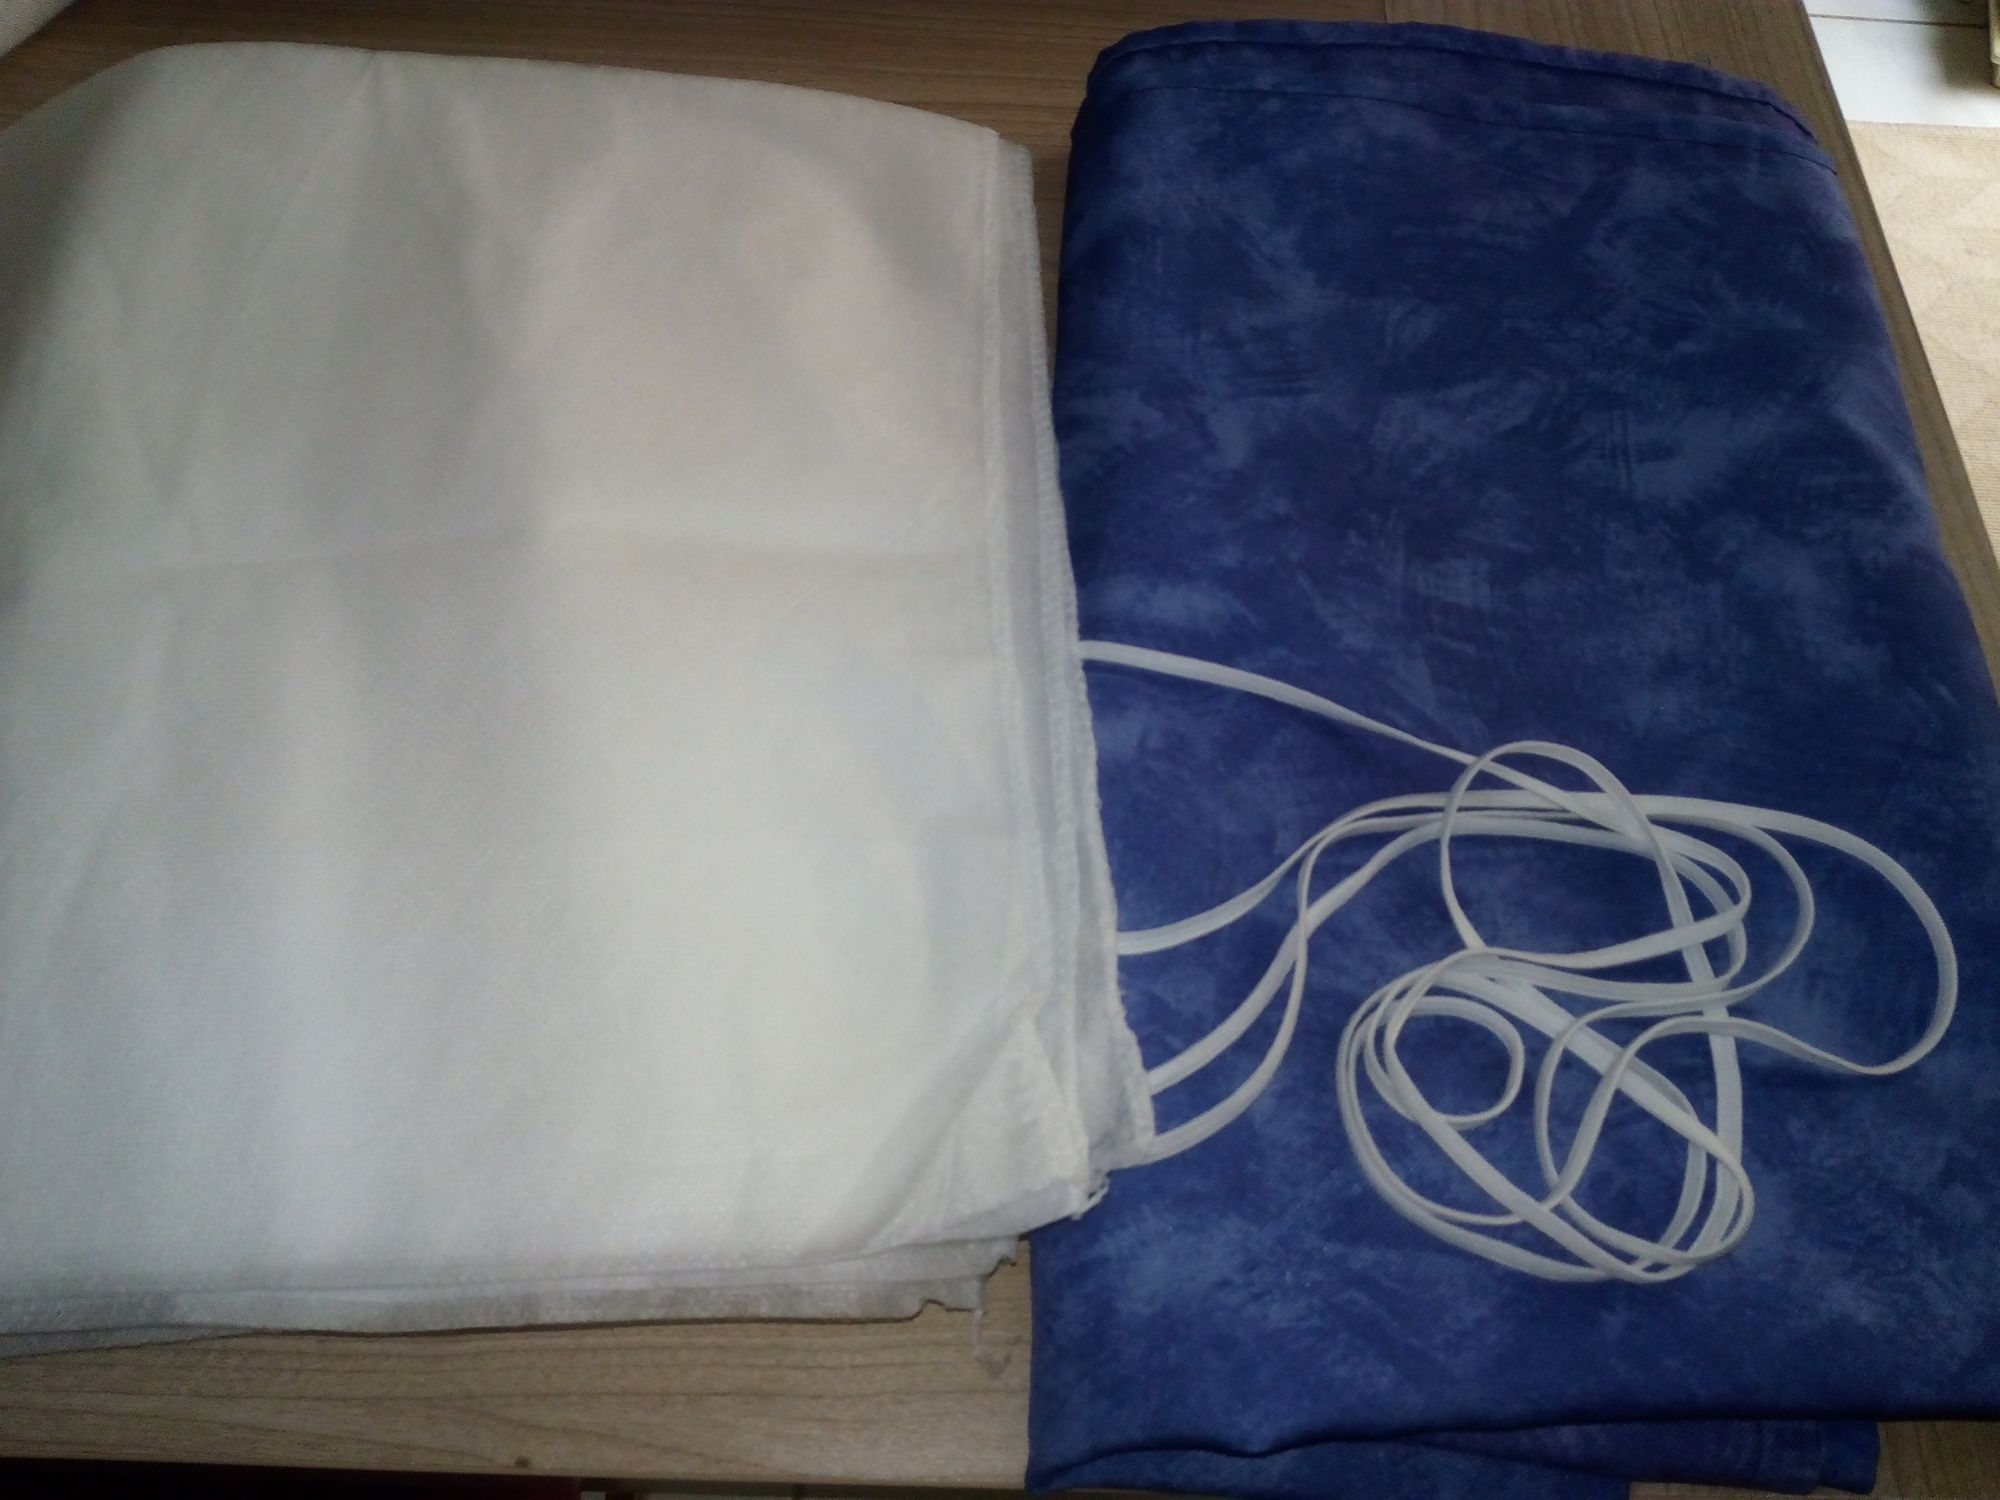 Materials to make masks during the COVID-19 outbreak